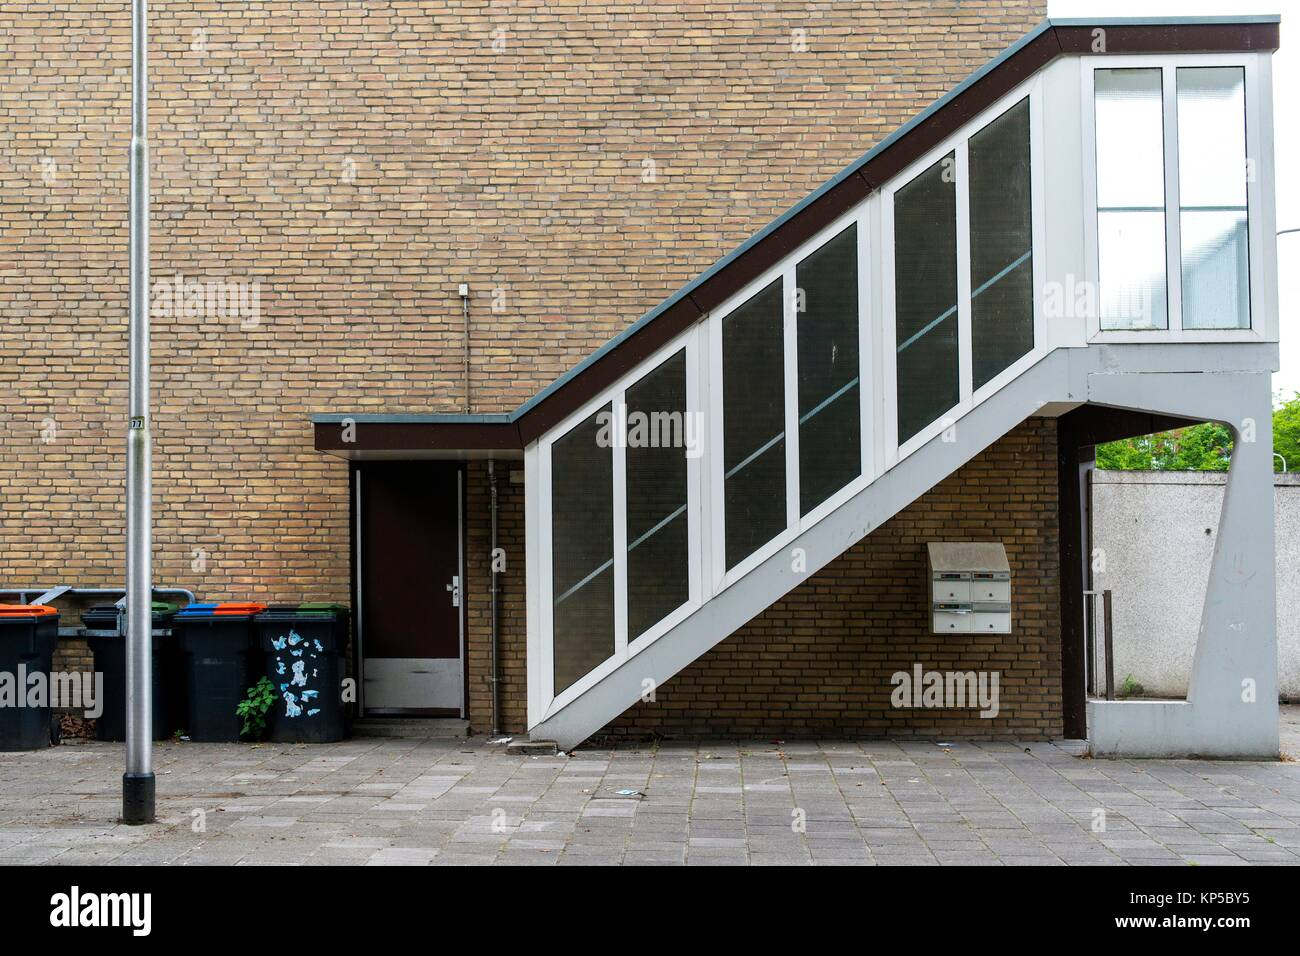 Tilburg, Netherlands. Elevating stairs towards the second floor of an 1960´s designed apartment building. - Stock Image